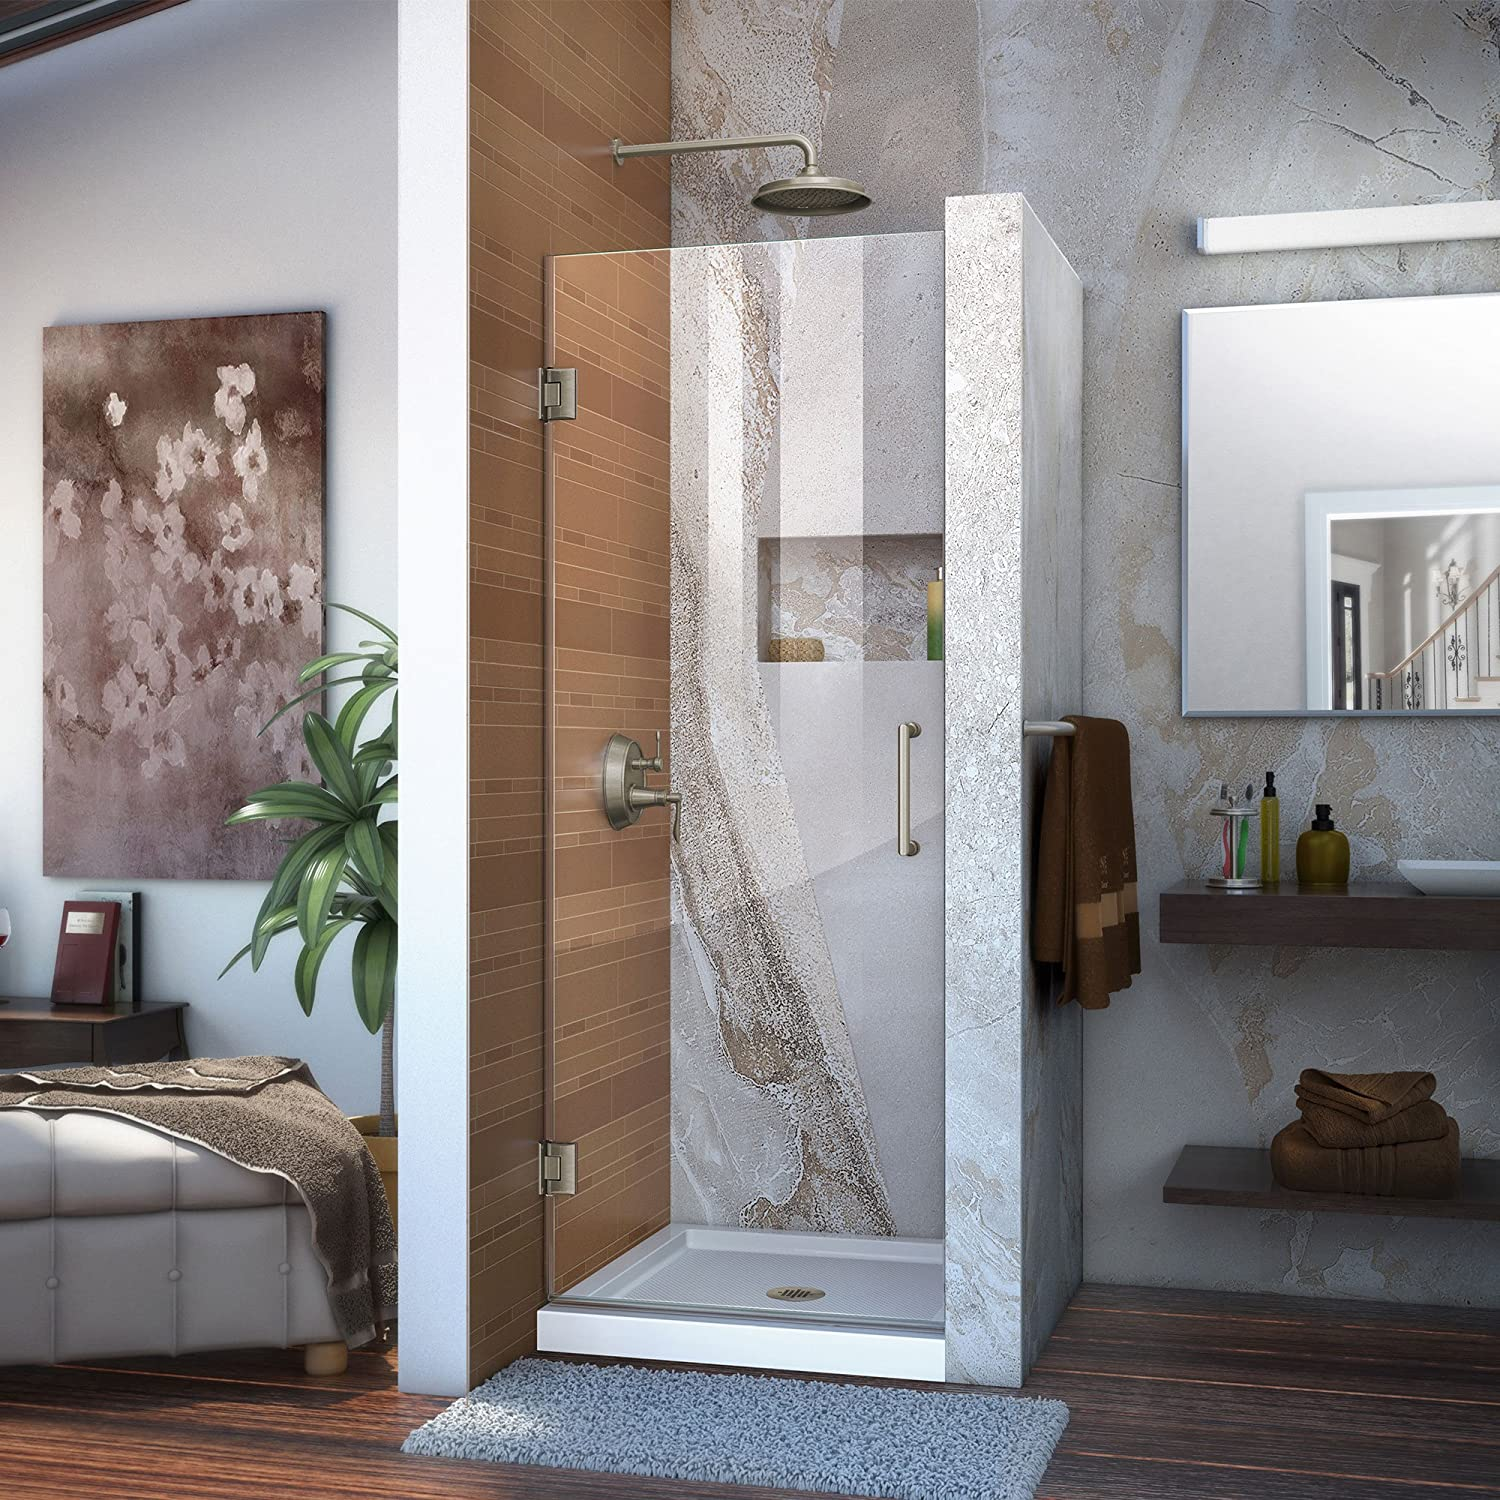 DreamLine Unidoor 29 in. Frameless Hinged Shower Door in Brushed Nickel finish, SHDR-20297210F-04